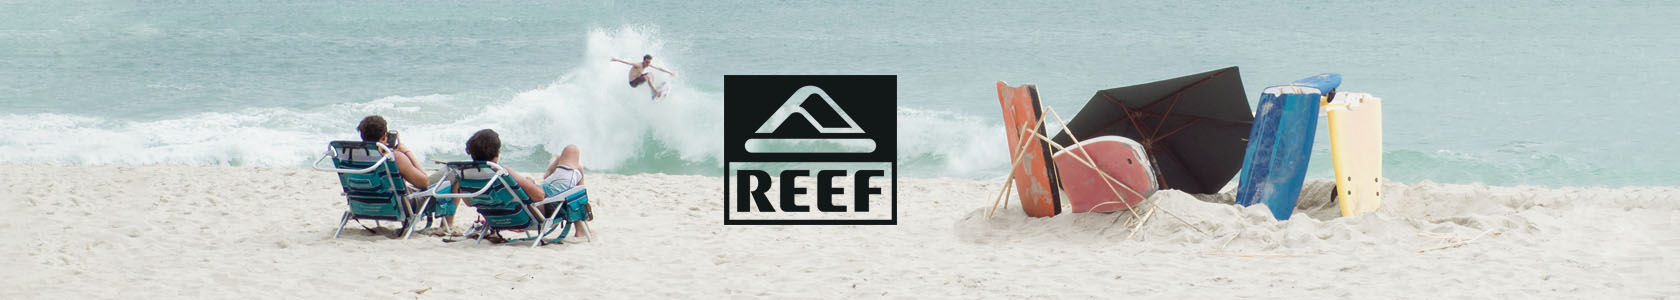 Surfer riding wave wearing Reef gear.